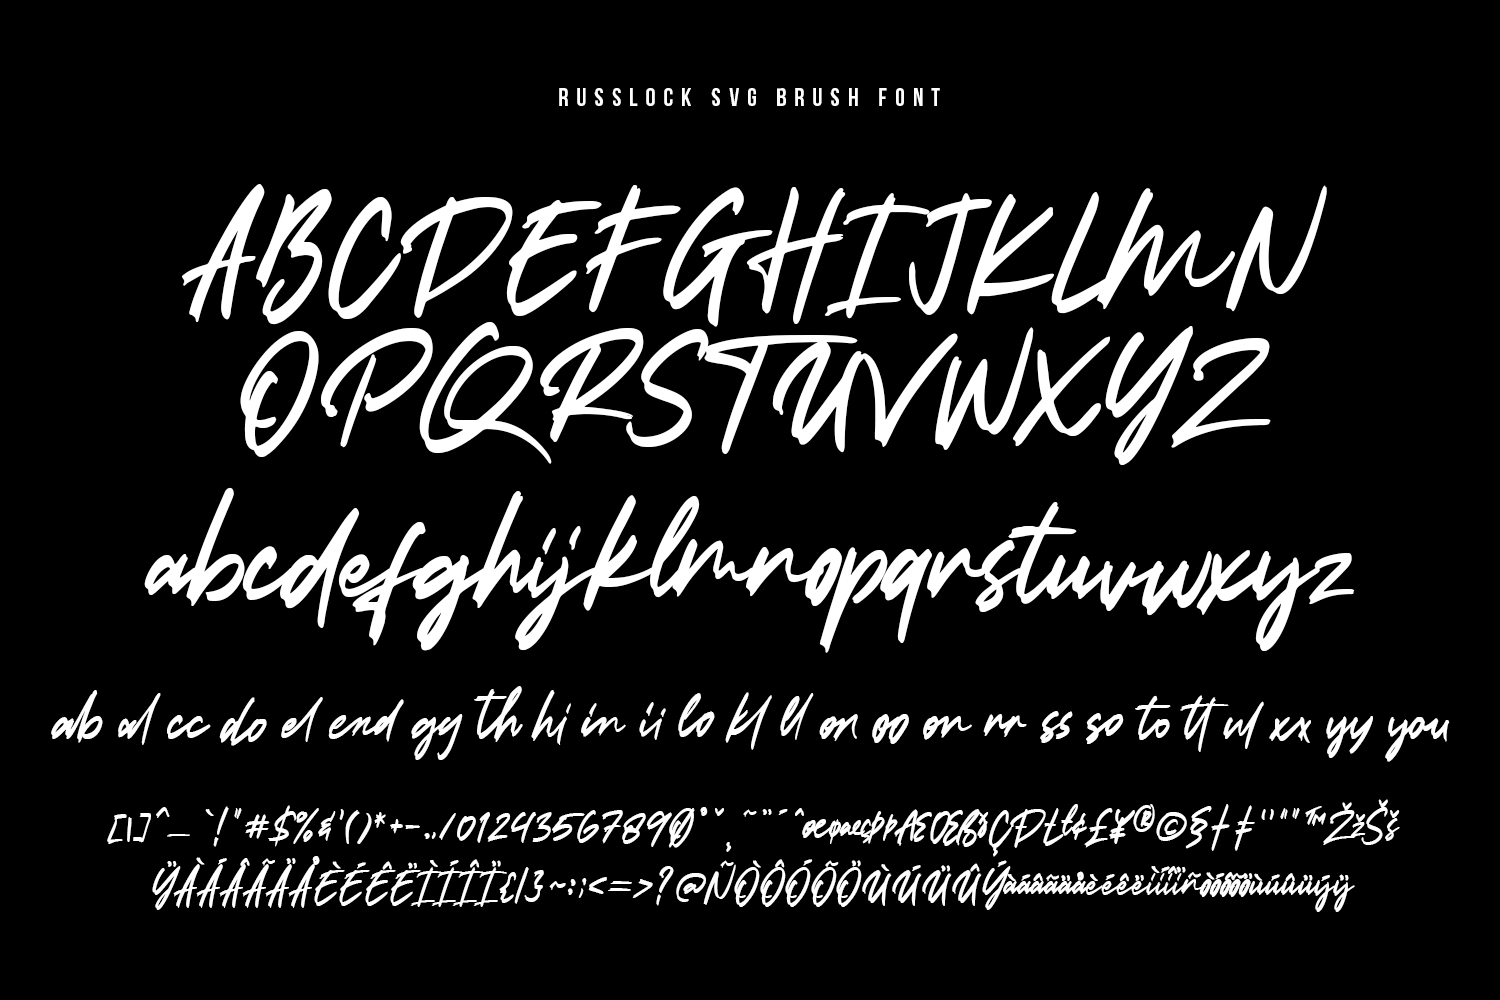 Russlock SVG Brush Font example image 13